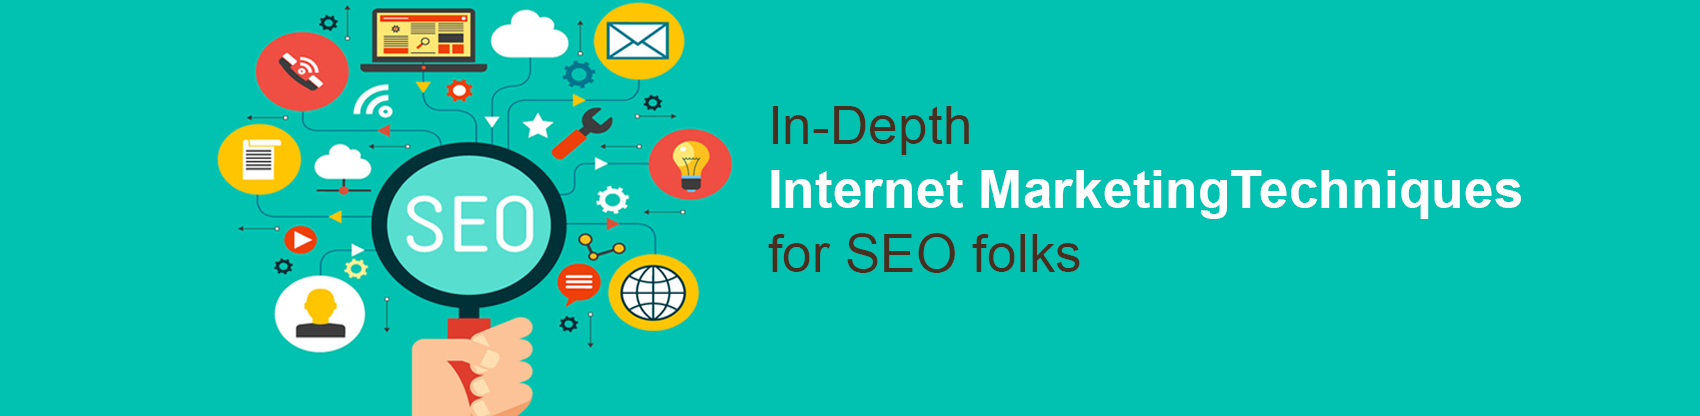 In-depth internet marketing techniques for SEO folks